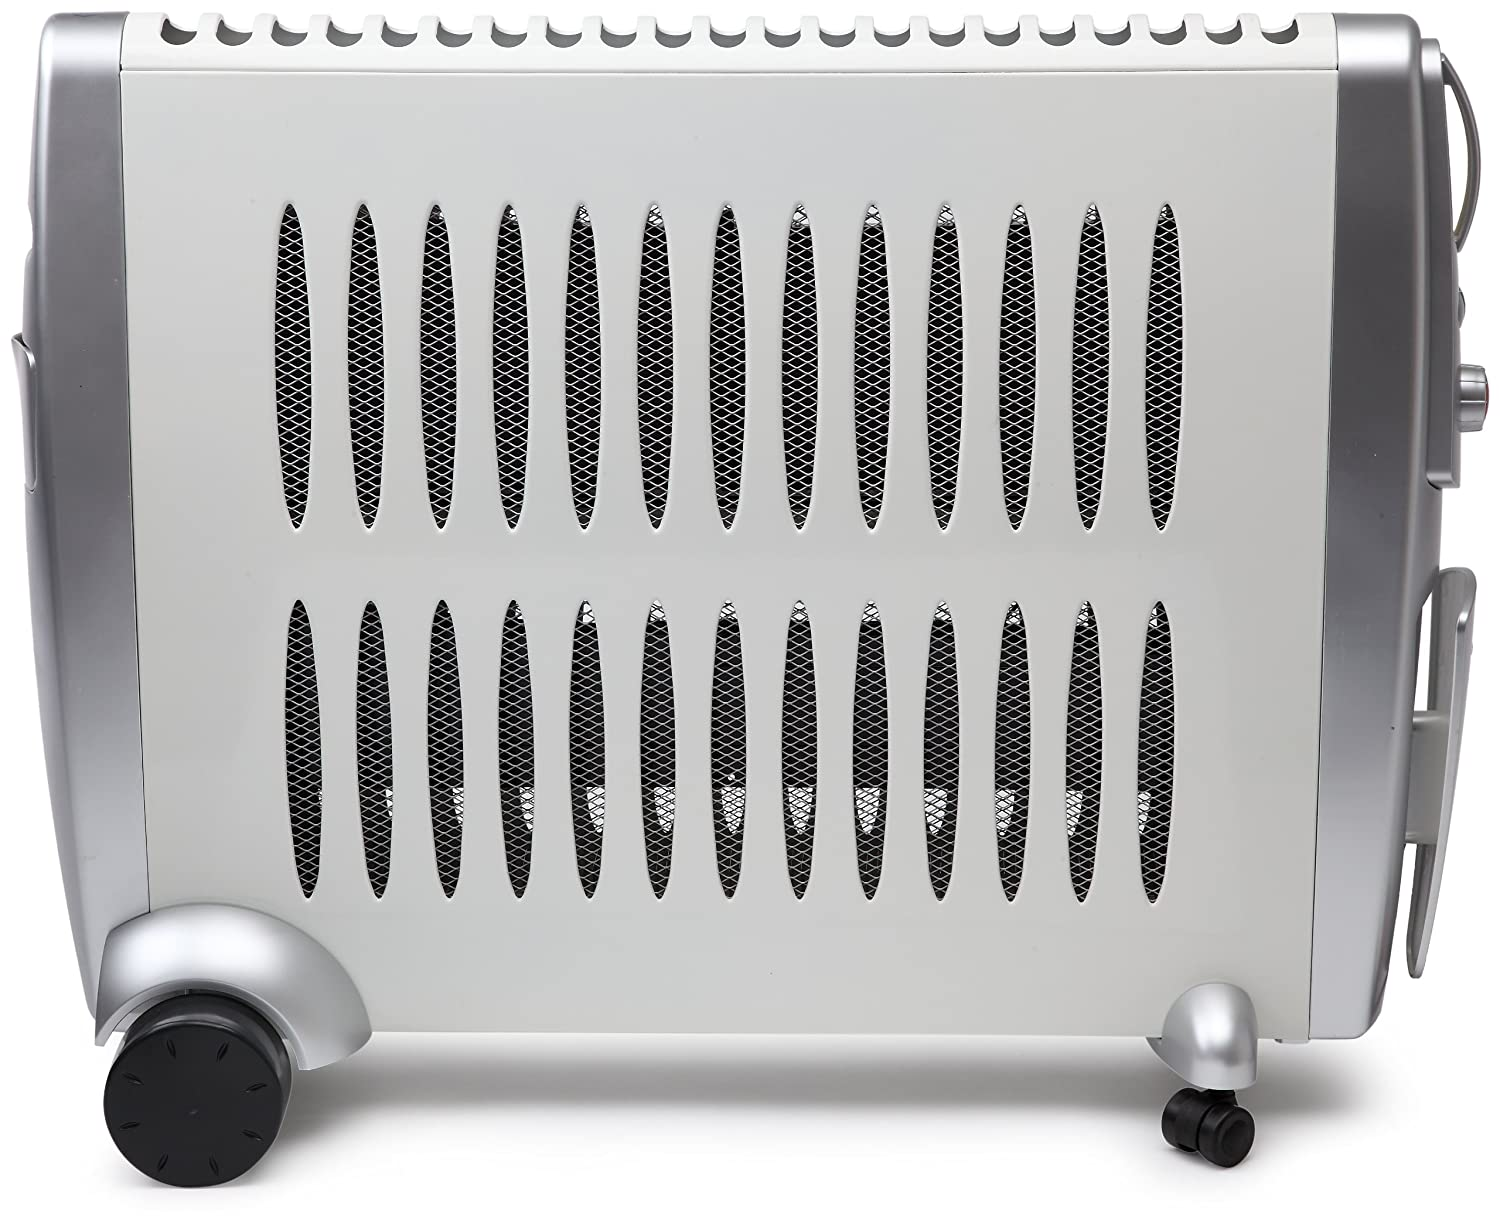 radiateur electrique portable gallery of radiateur. Black Bedroom Furniture Sets. Home Design Ideas